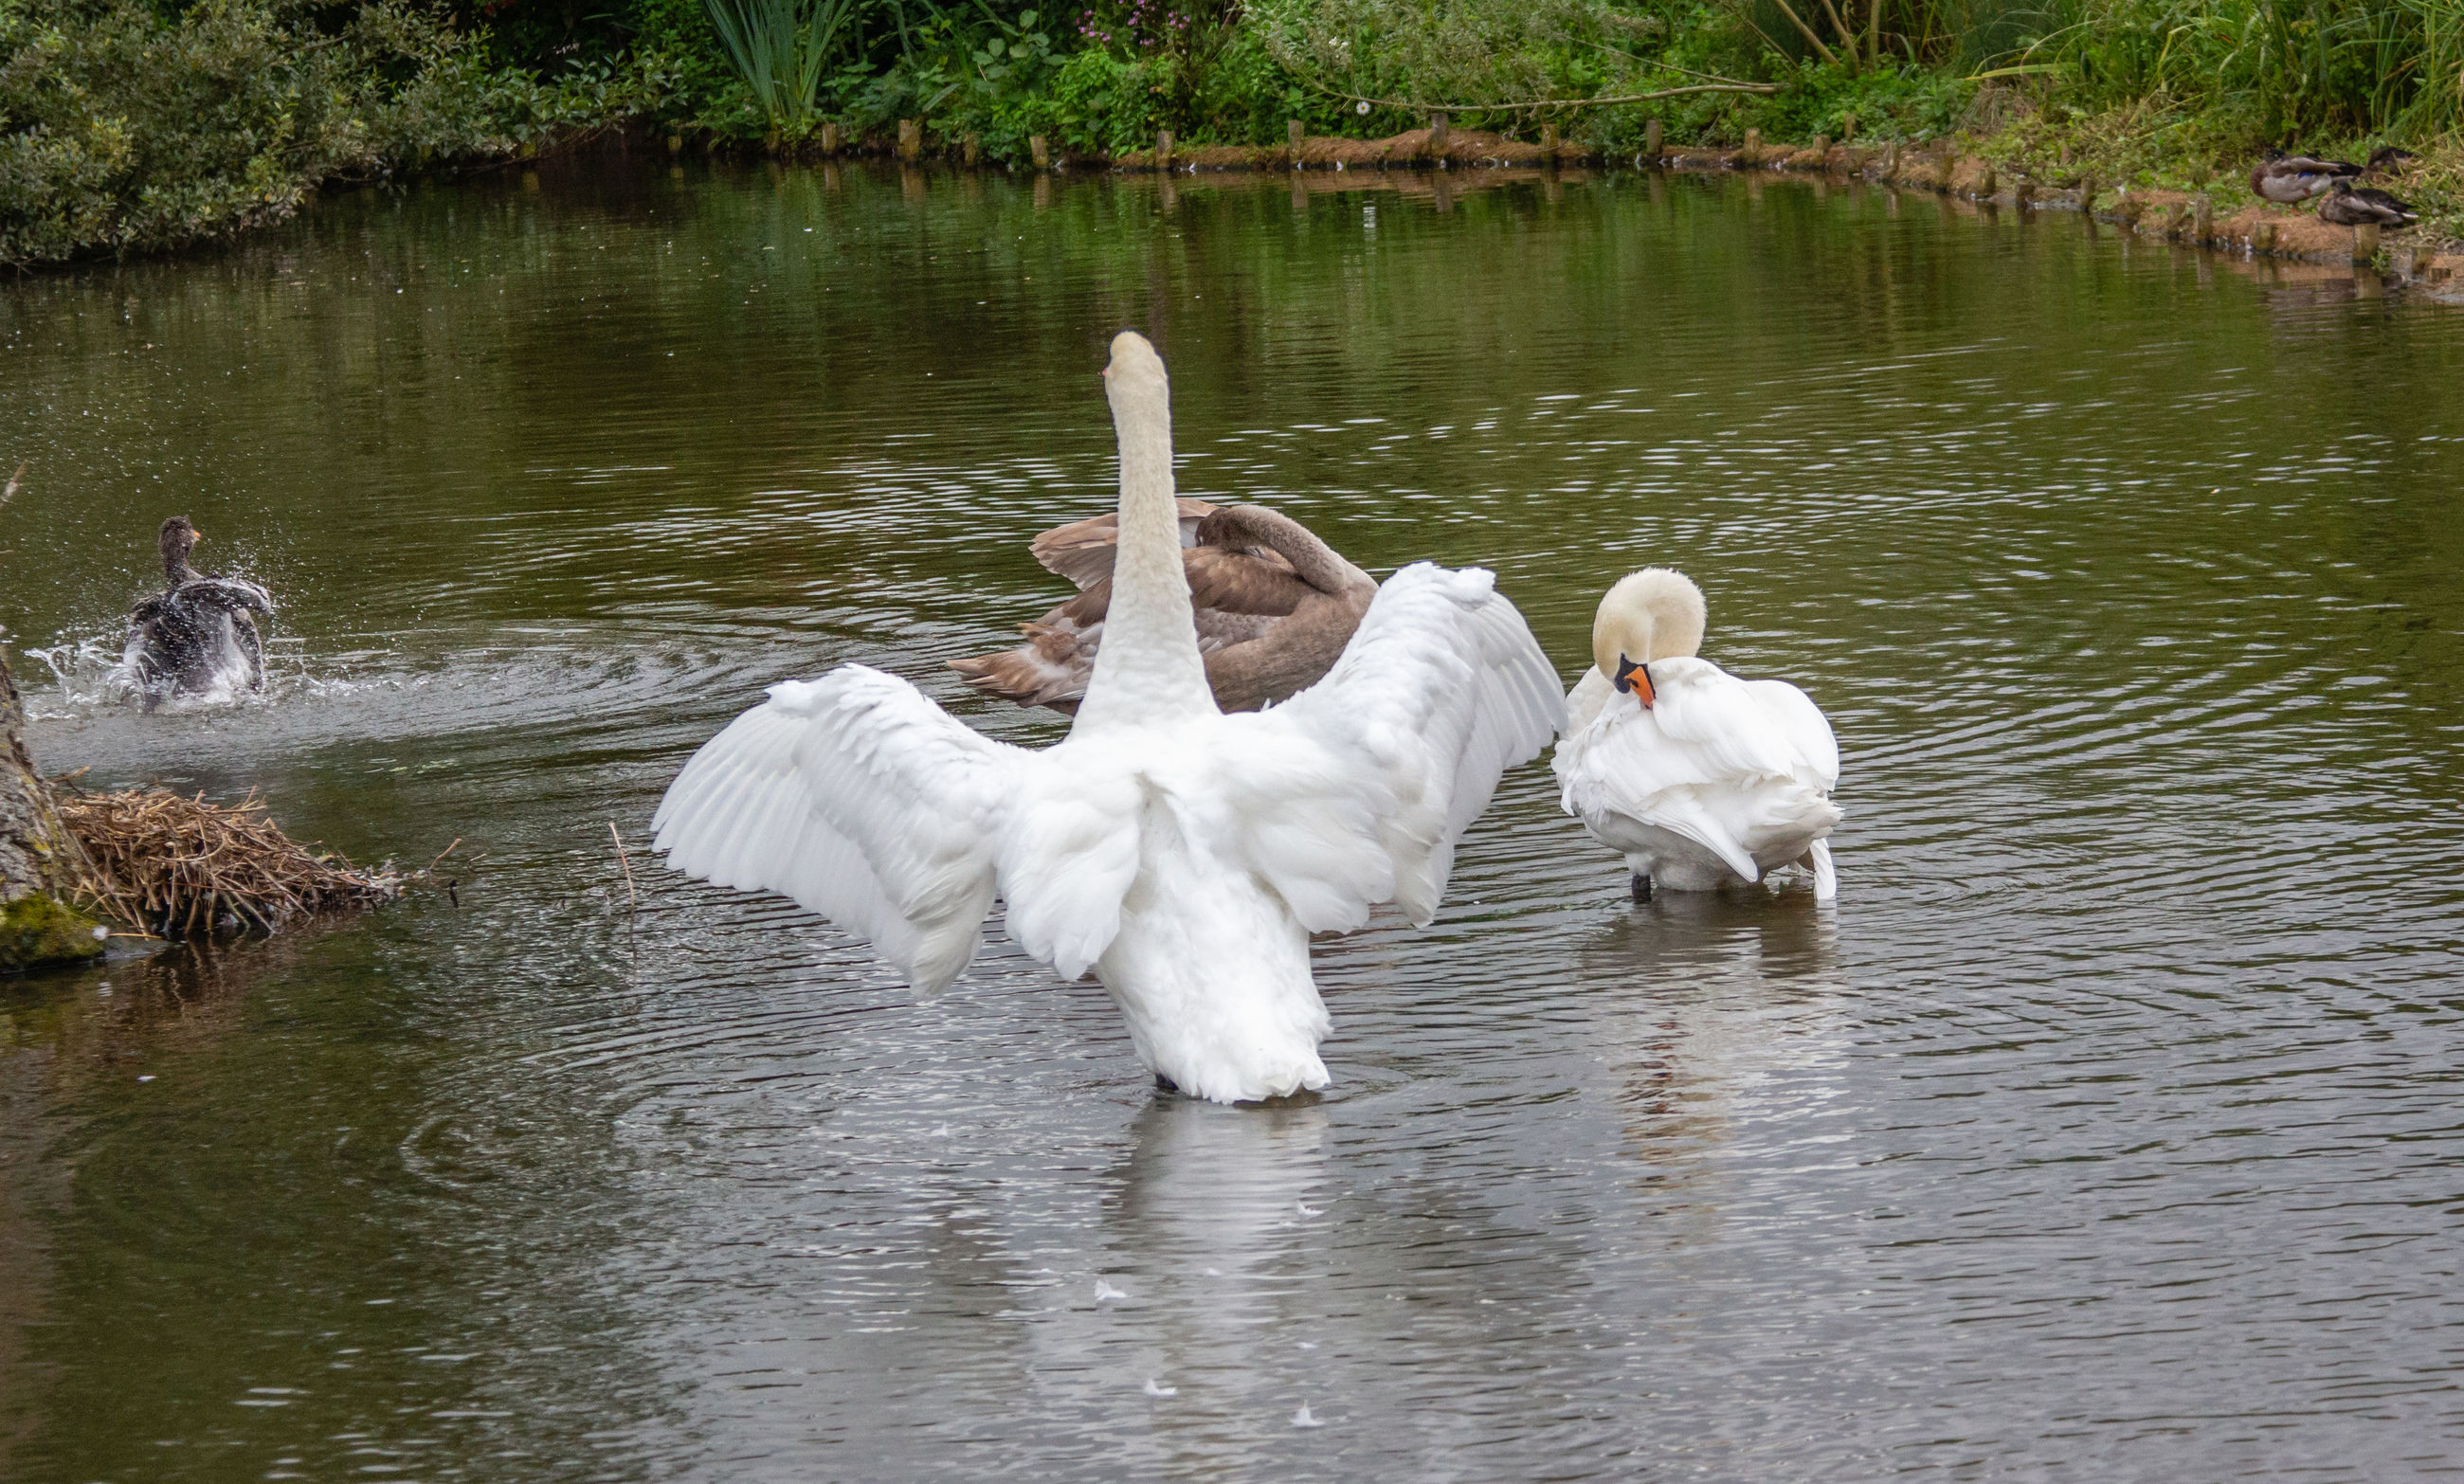 water, lake, animal, animal themes, vertebrate, bird, swan, animals in the wild, animal wildlife, waterfront, group of animals, white color, swimming, reflection, water bird, nature, no people, togetherness, day, cygnet, outdoors, animal family